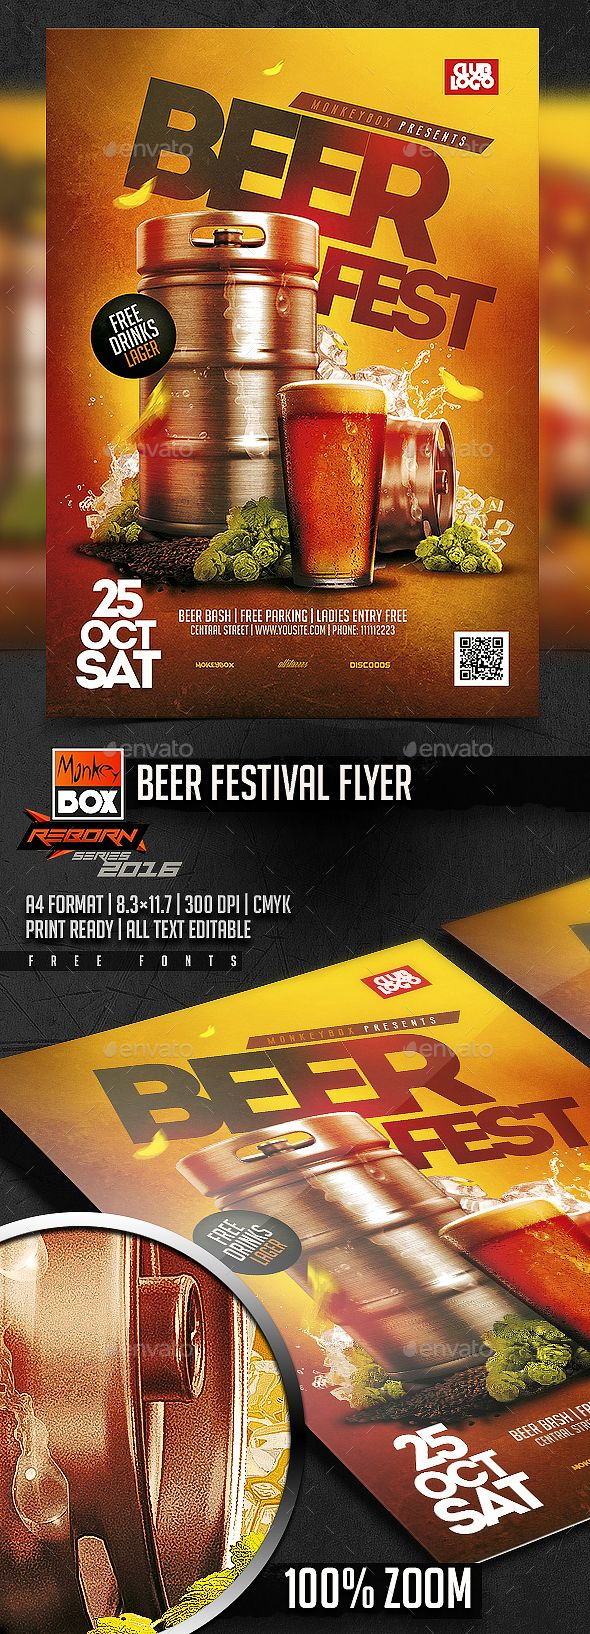 Beer Festival Flyer  — PSD Template #brew #oktober • Download ➝ https://graphicriver.net/item/beer-festival-flyer/18410760?ref=pxcr